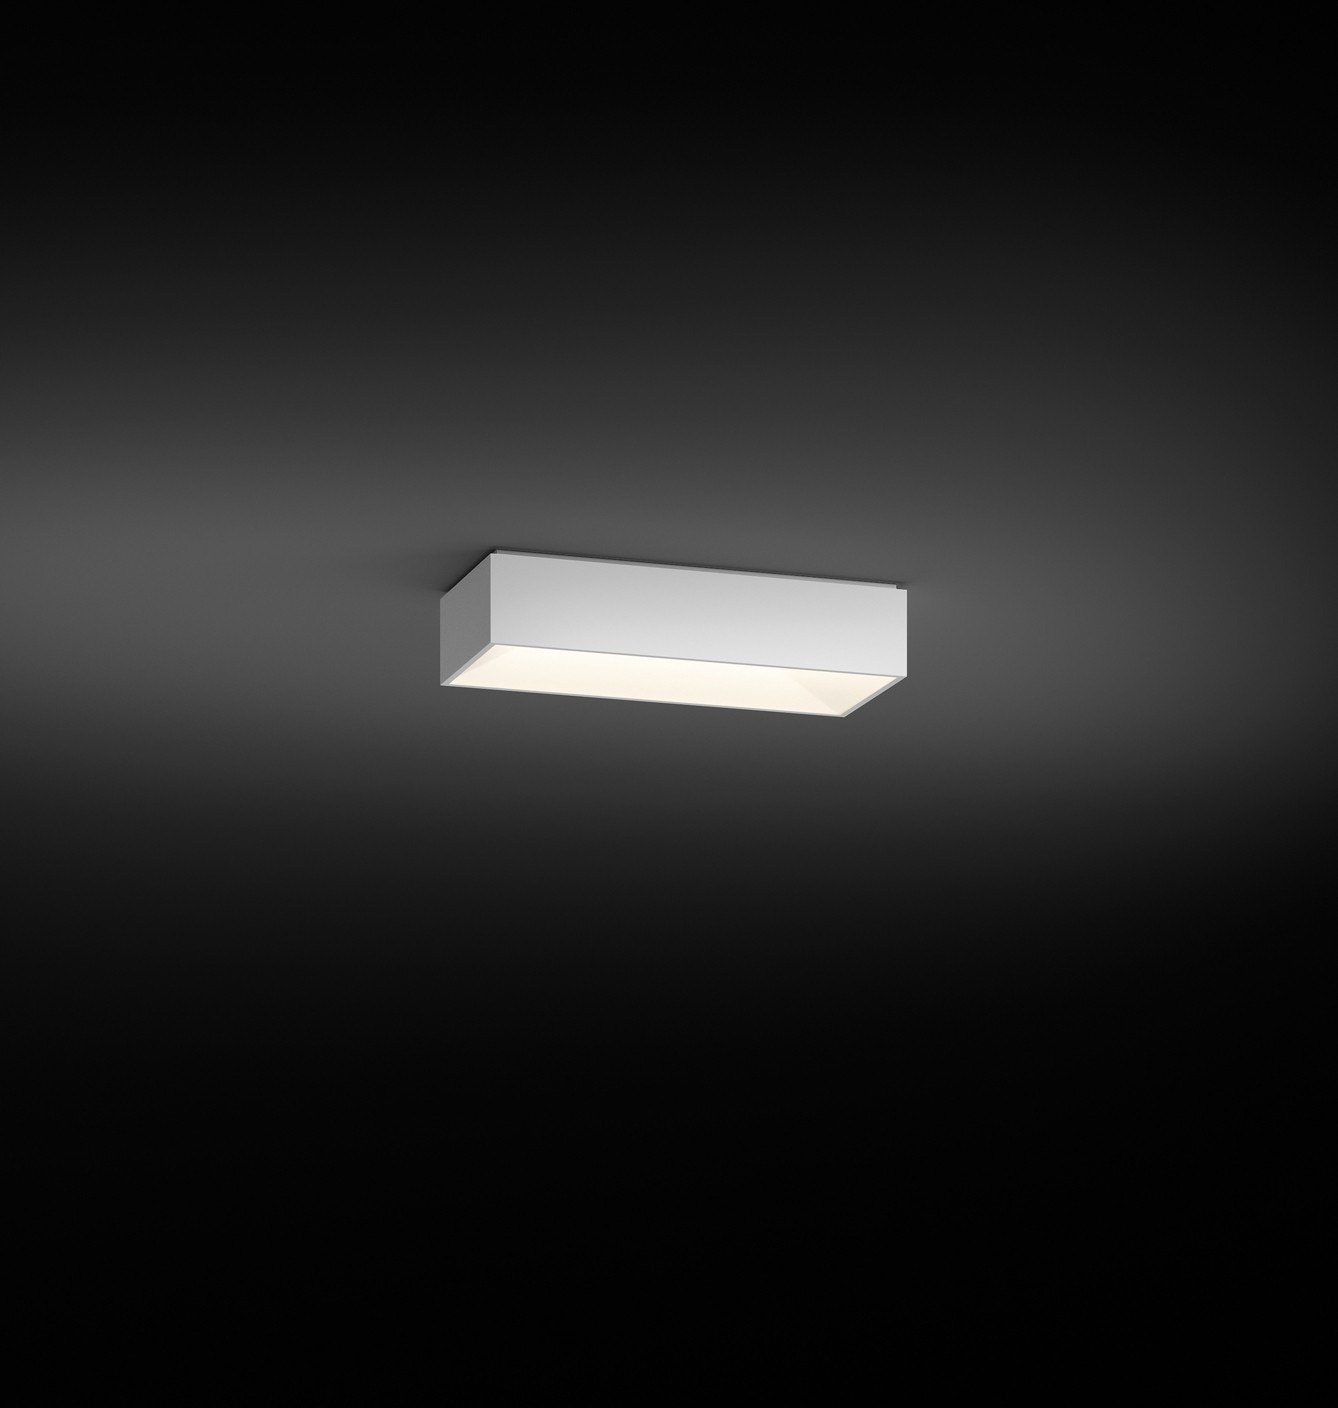 Vibia Link 5373 Ceiling Lamp